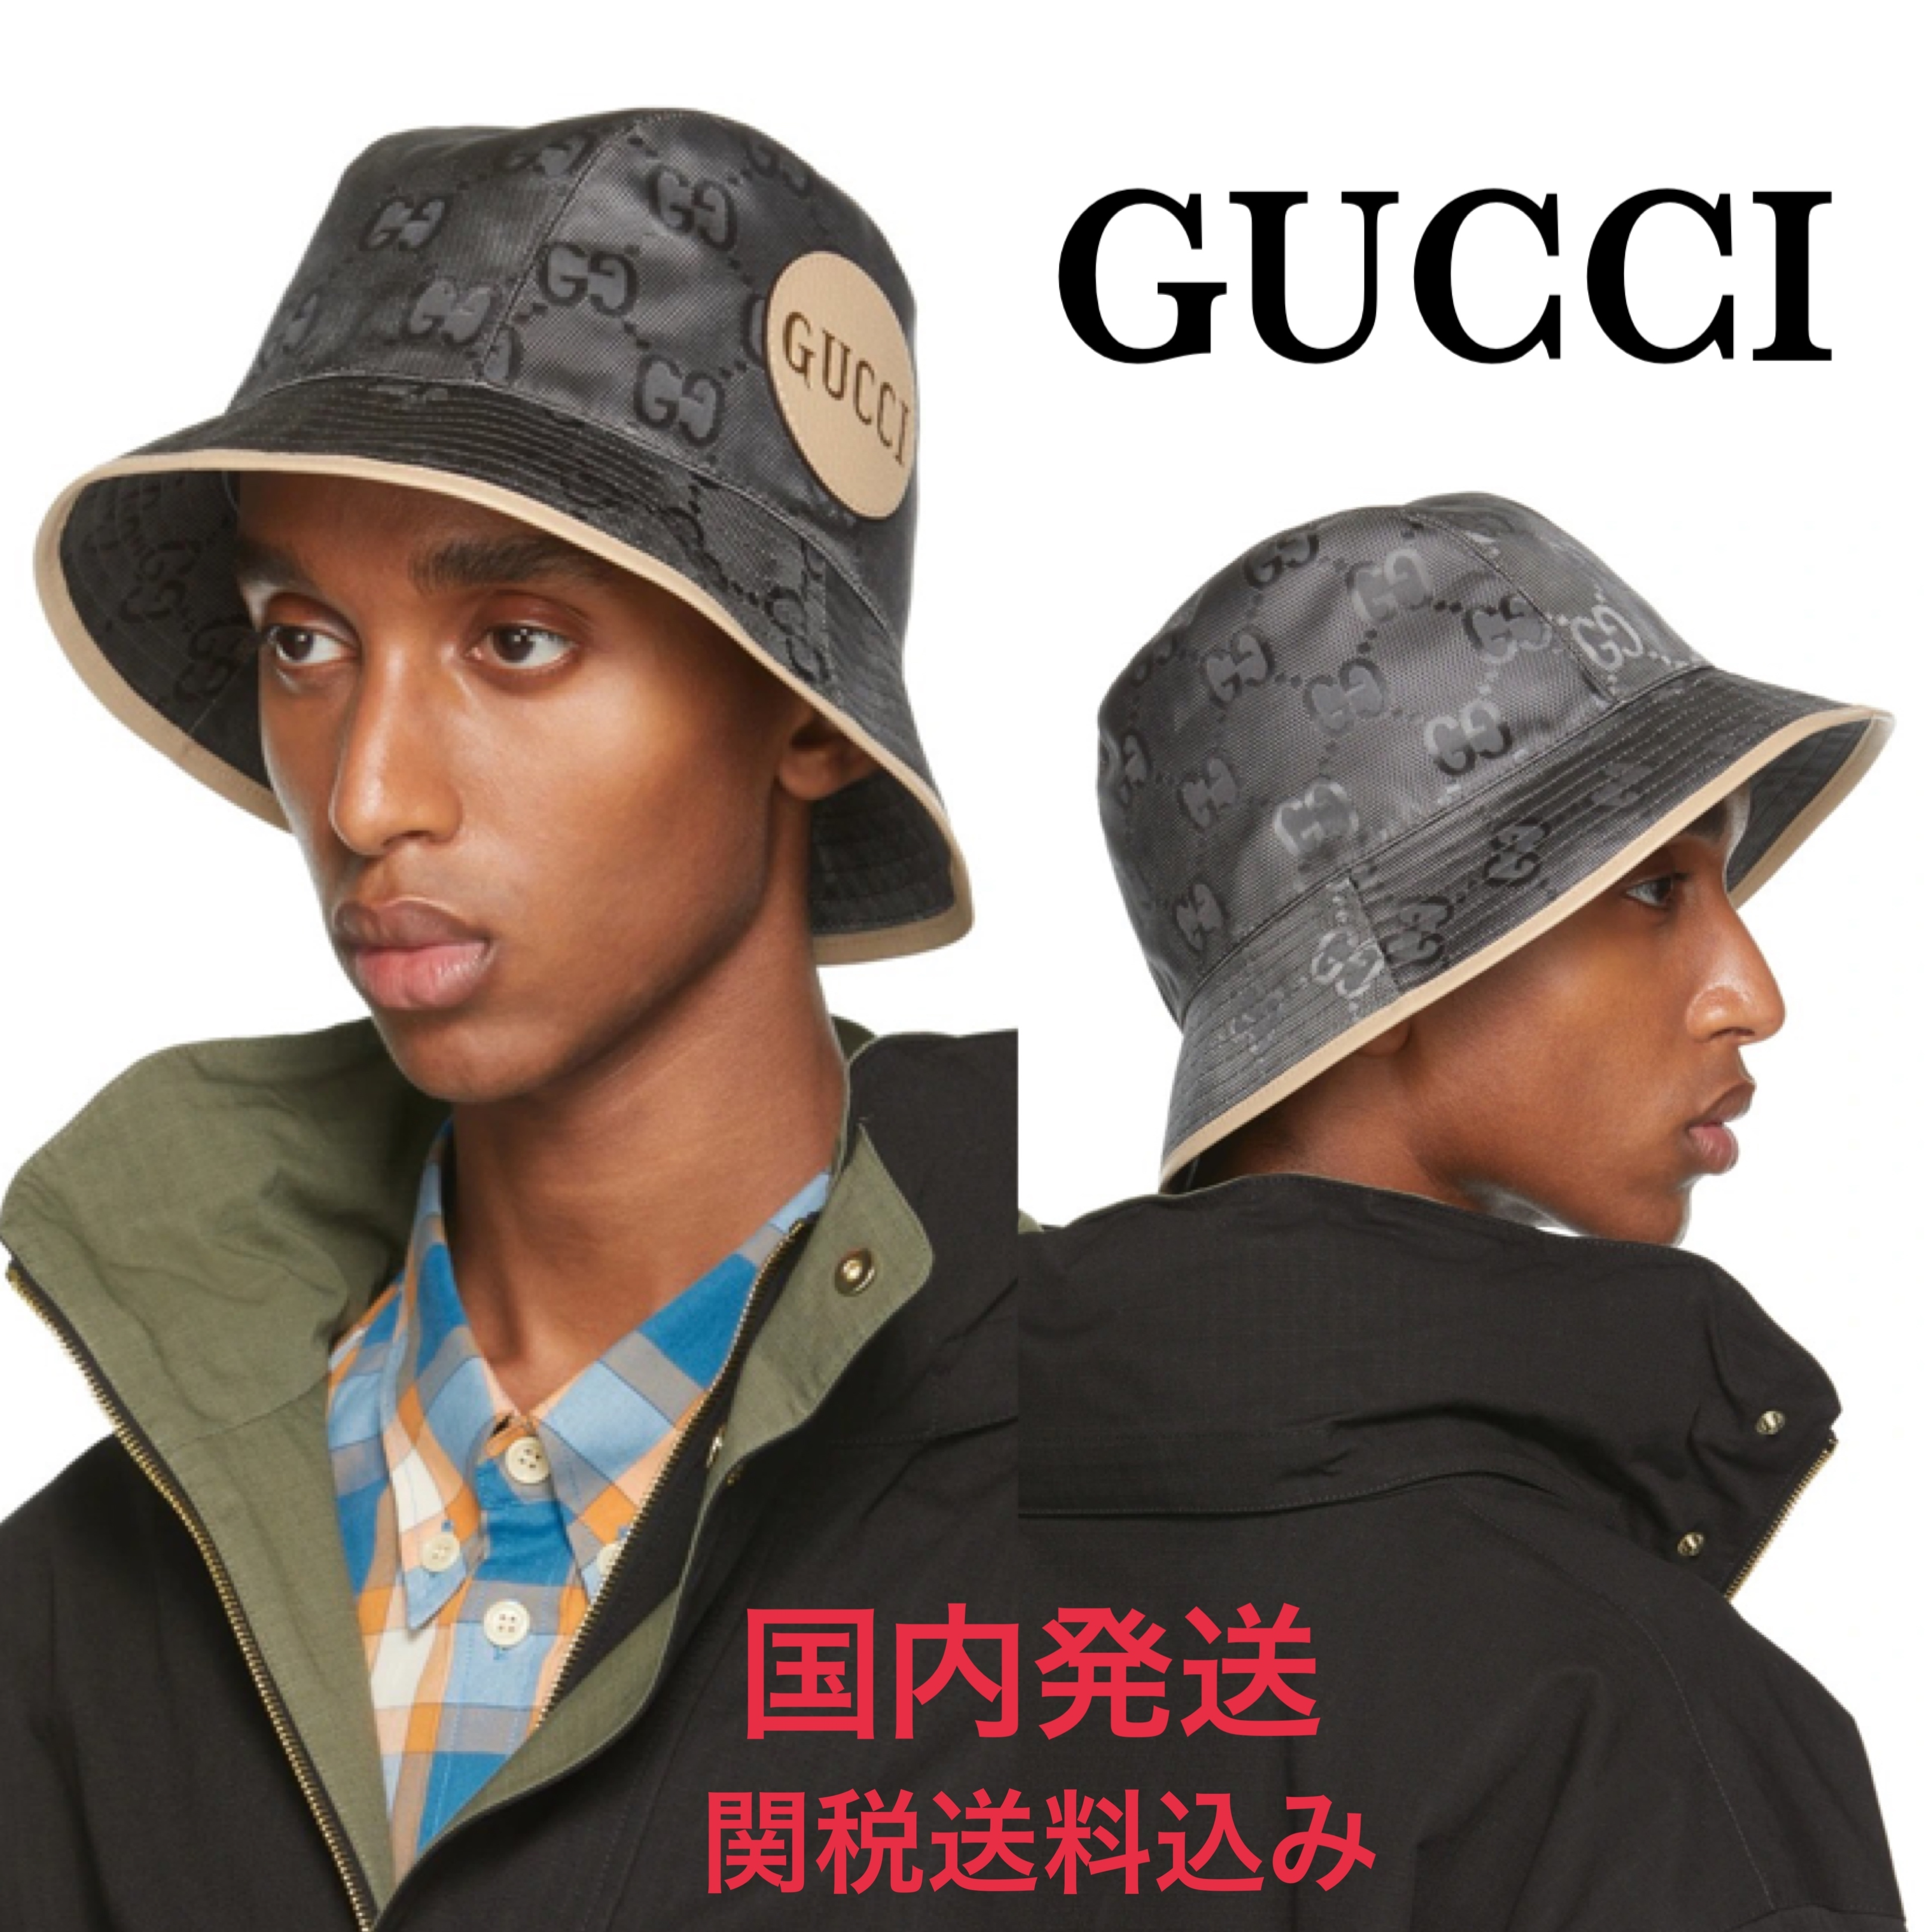 GUCCI/Off The Grid コレクション グレー バケット ハット (GUCCI/ハット) 72182146